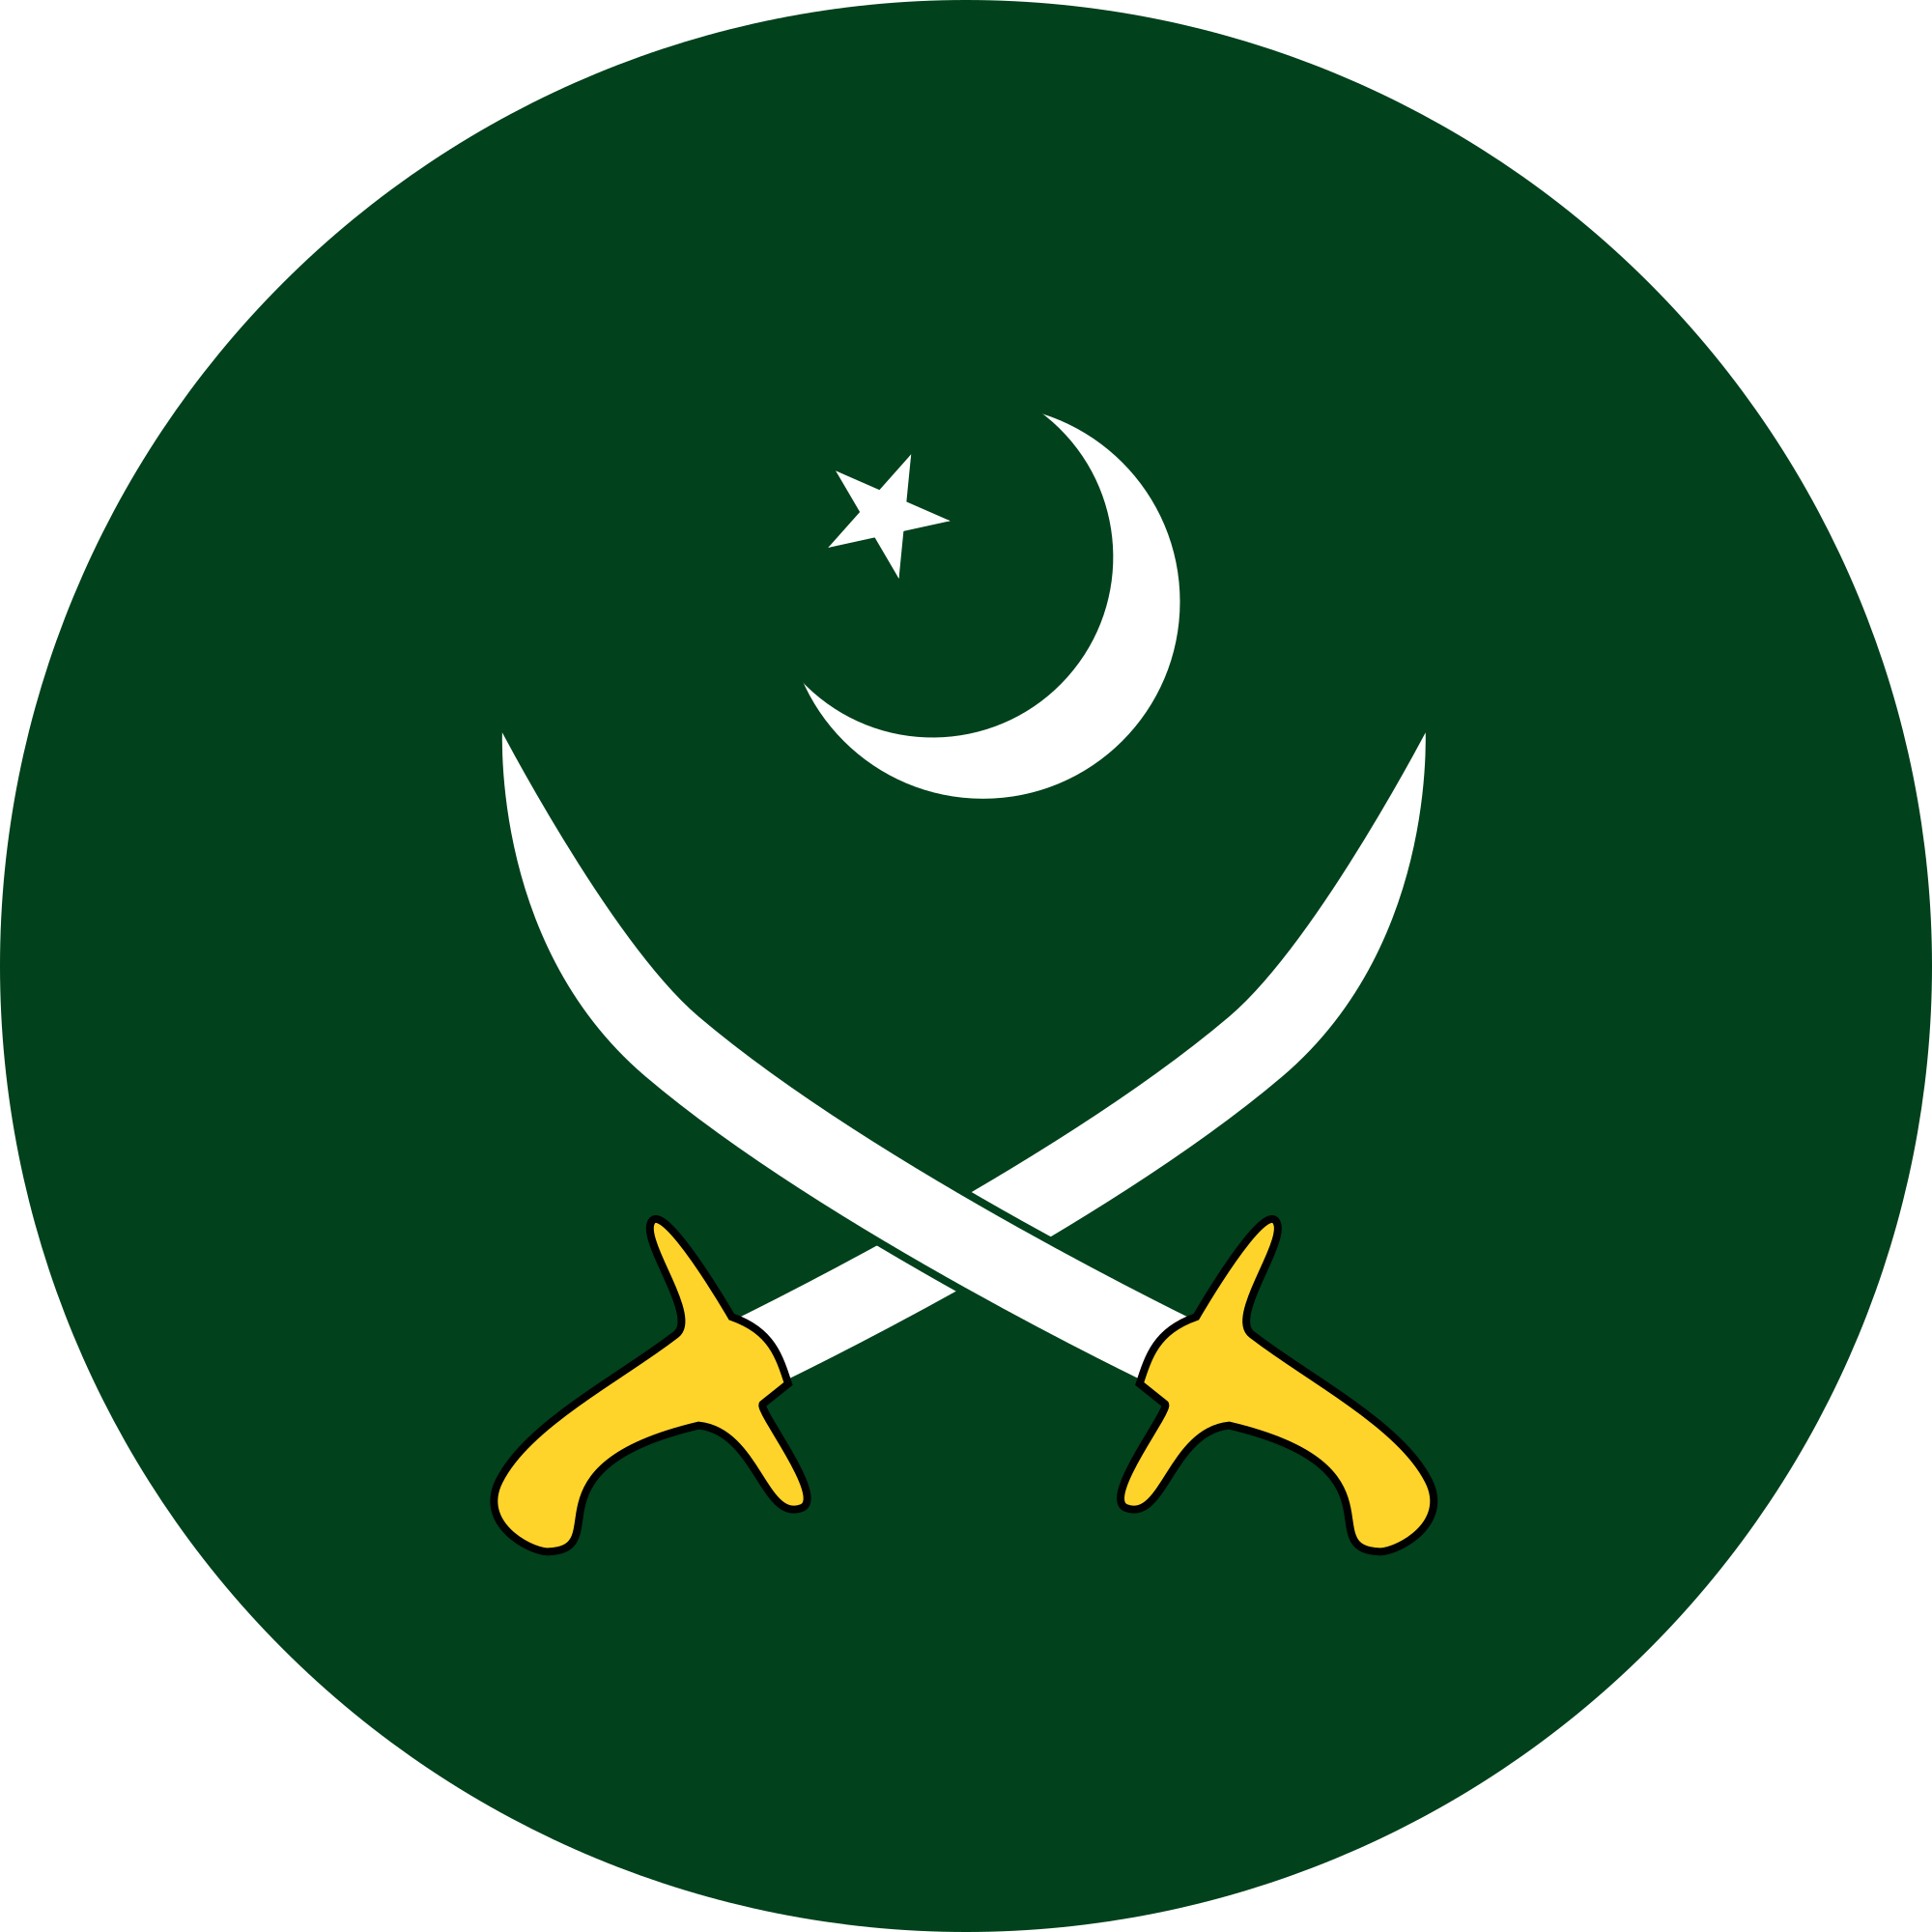 File:Pakistan Army Emblem.png.